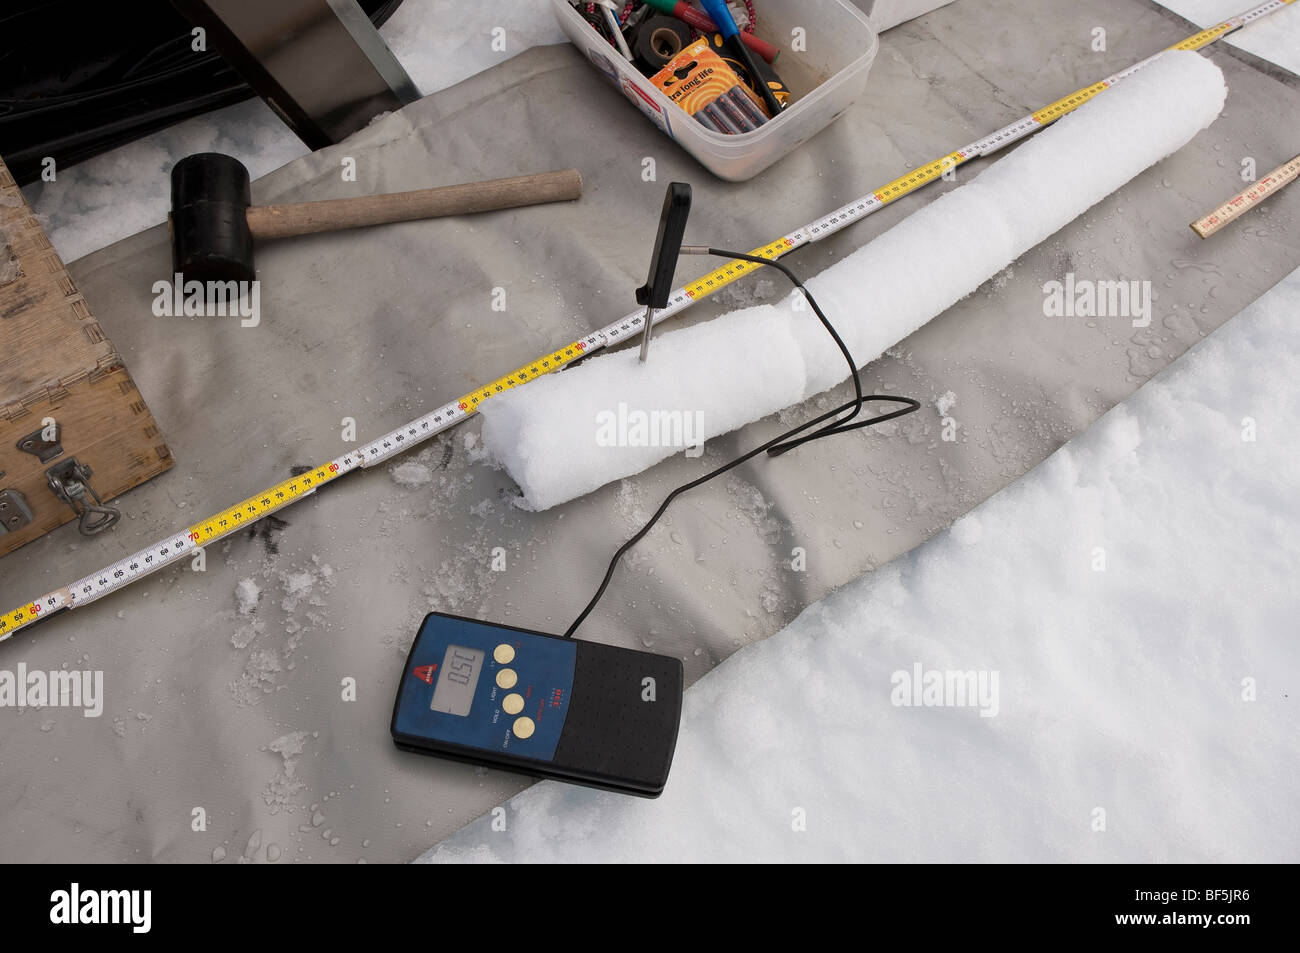 Thermometer measures temperature in ice core sample, Iceland - Stock Image